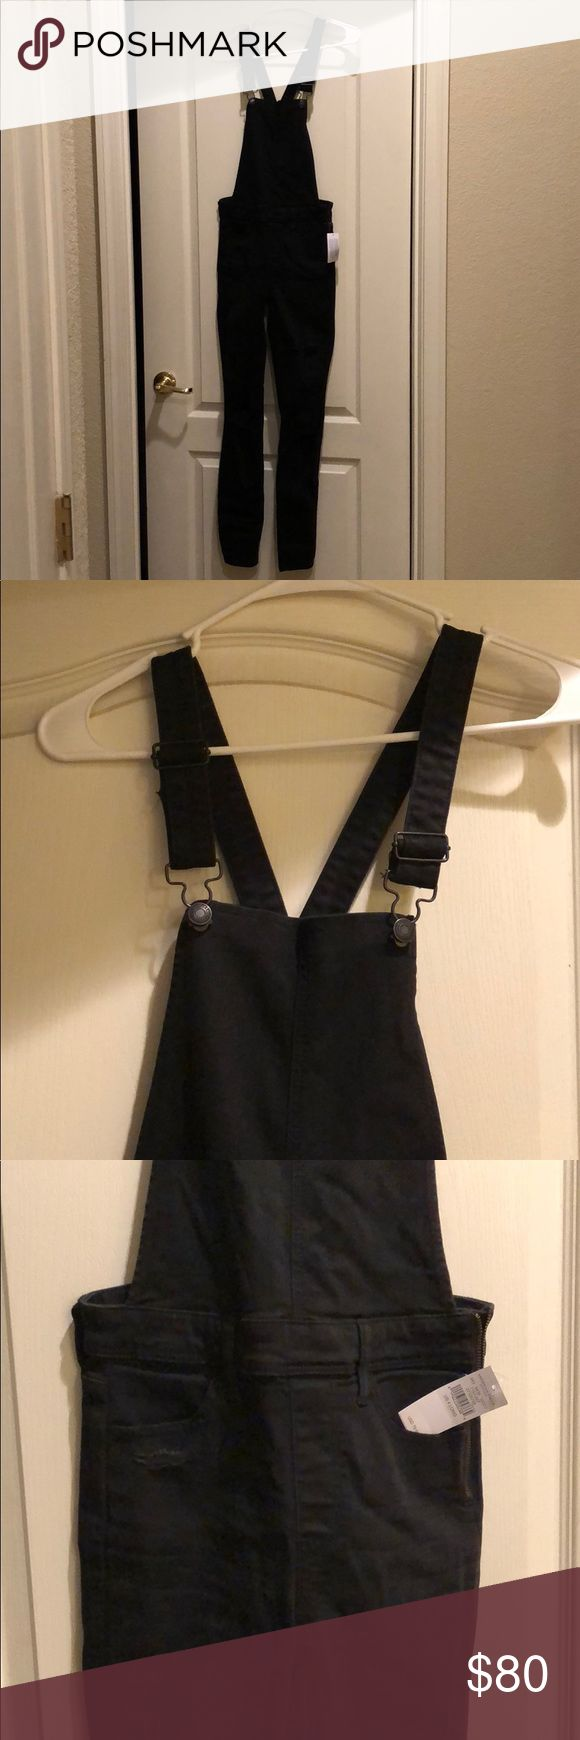 American Eagle Denim X Jegging Overall American Eagle Denim X Jegging Overall in Black with cute rips in the legs. NWT. Size 4 Long. Super cute and stretchy, wish they fit me! American Eagle Outfitters Pants